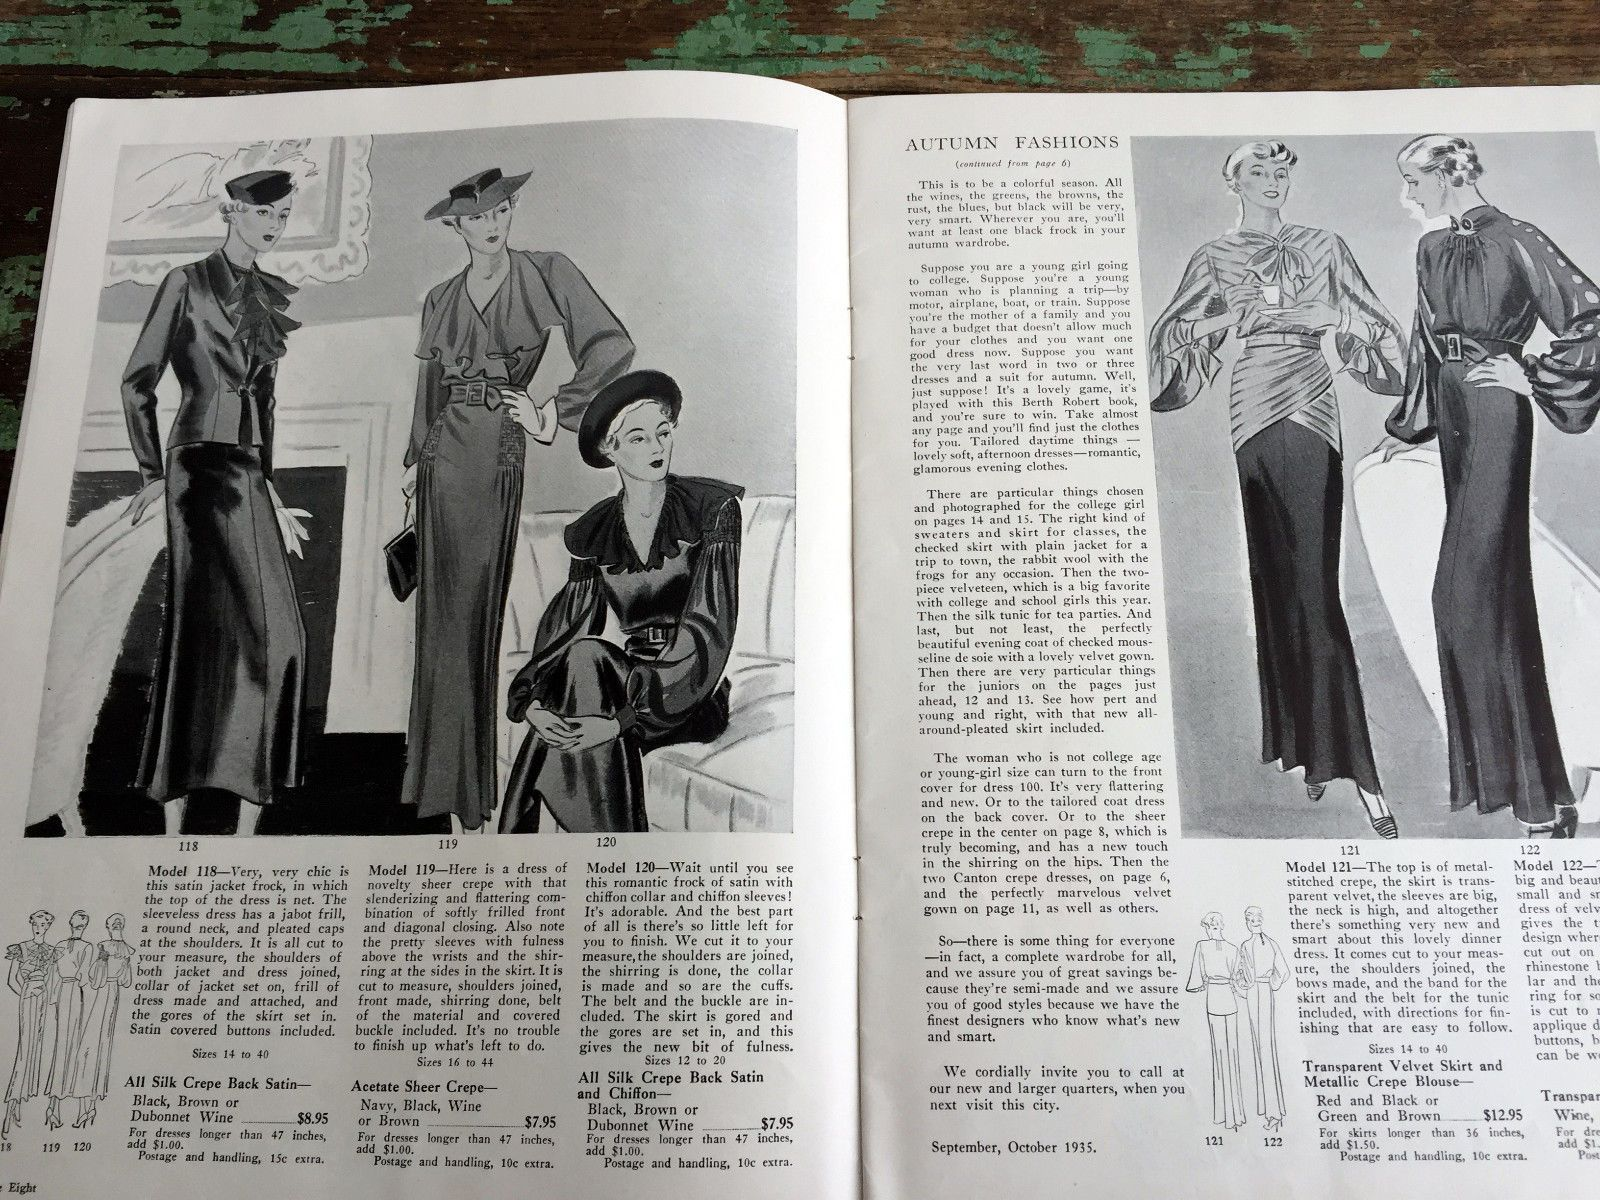 Antique 1935 Berth Robert Fall Fashion Pattern Booklet for Semi Made Dresses | eBay